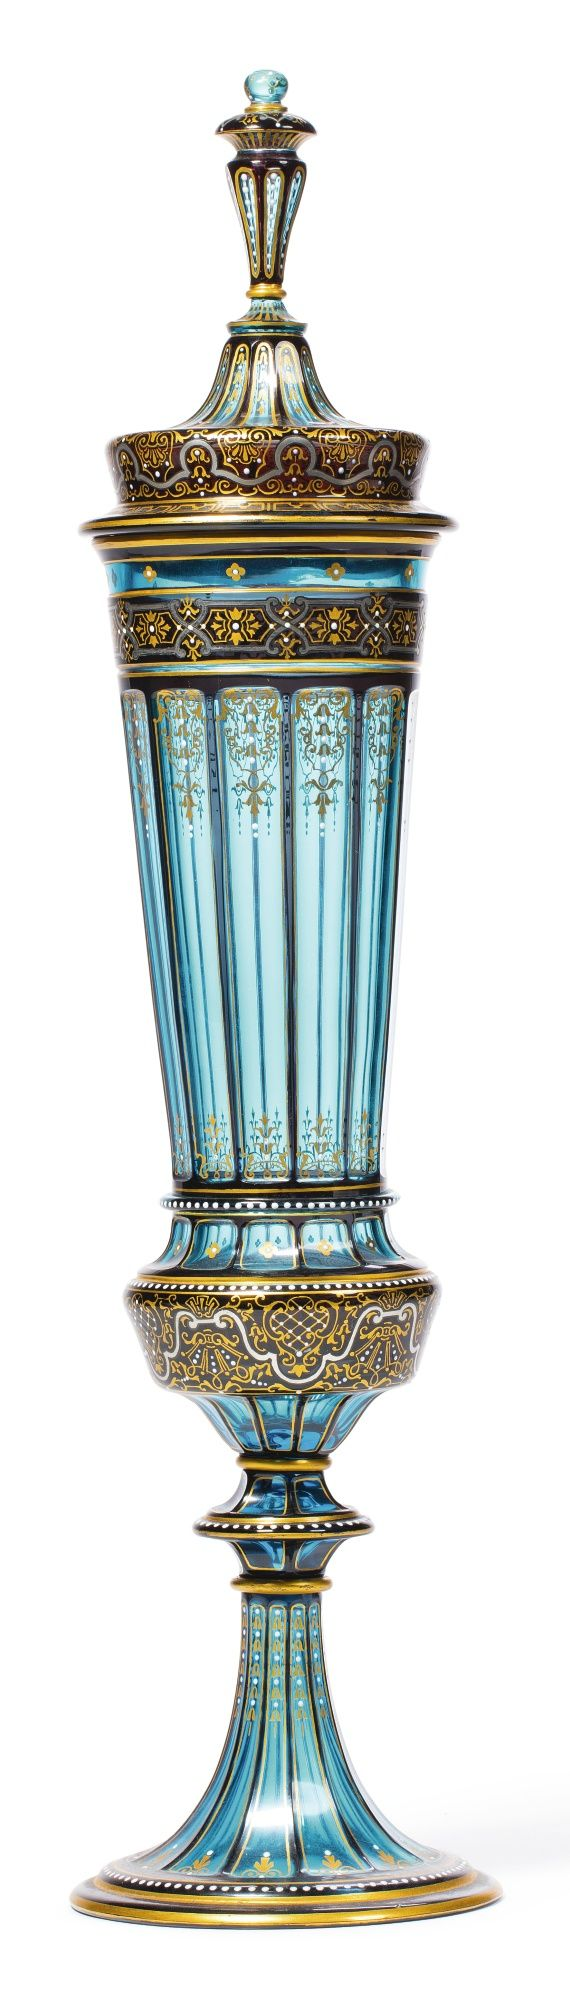 A J. & L. LOBMEYR JEWELLED TURQUOISE GLASS LARGE CUP AND COVER CIRCA 1880 of elongated faceted form, painted and gilt with stylized foliate- and strapwork, white enamel JLL monogram mark. height overall 21 in